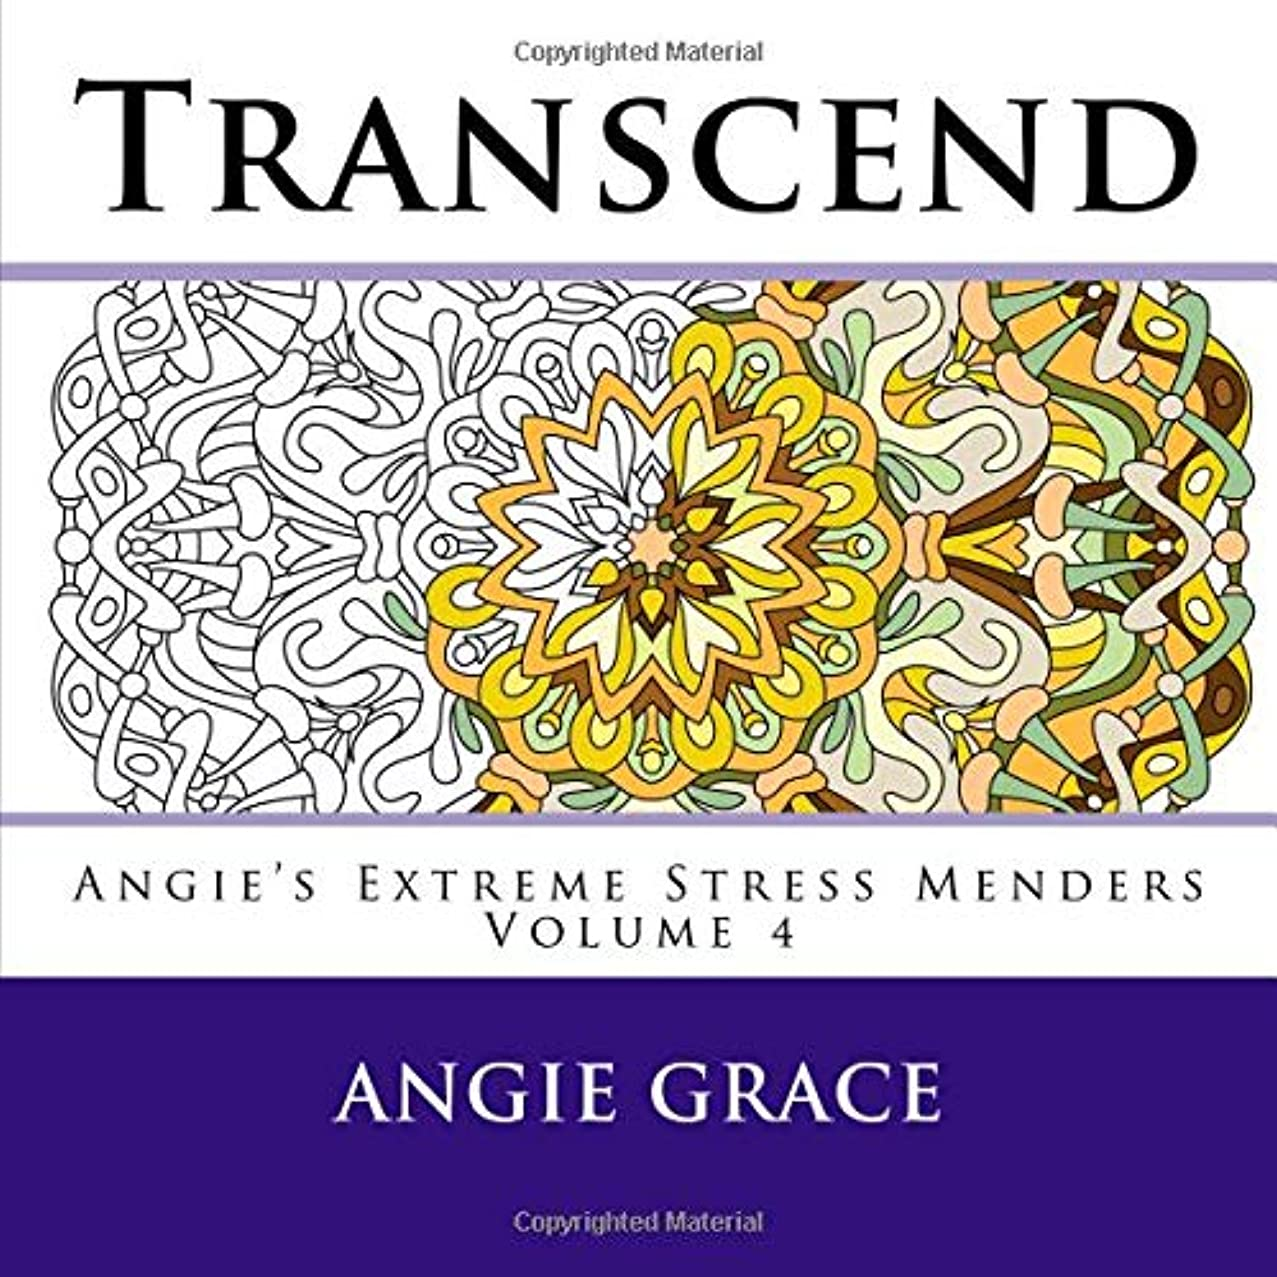 Transcend (Angie's Extreme Stress Menders Volume 4)